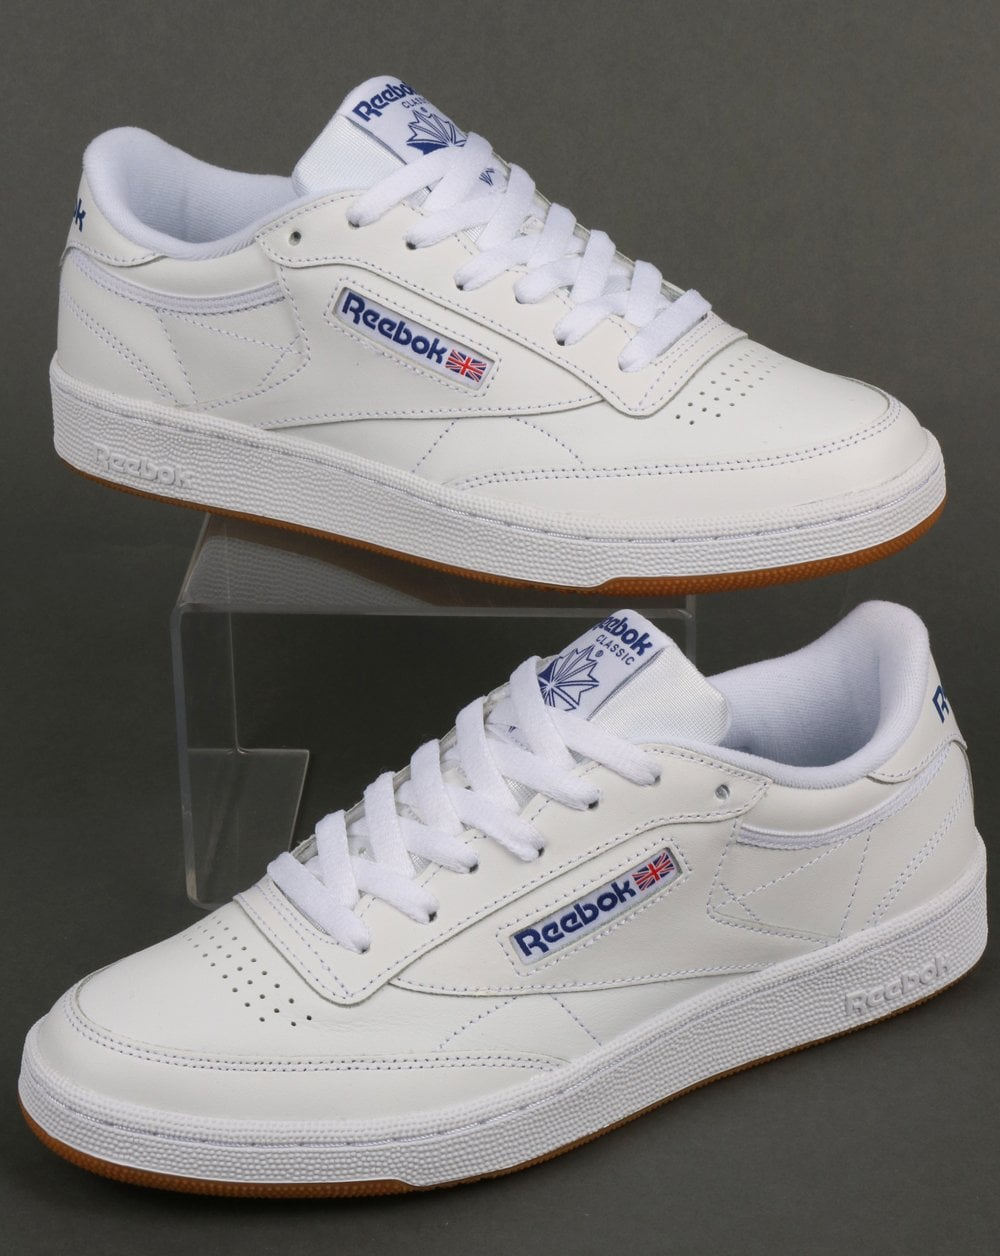 Reebok Club C 85 Trainers WhiteRoyalGum